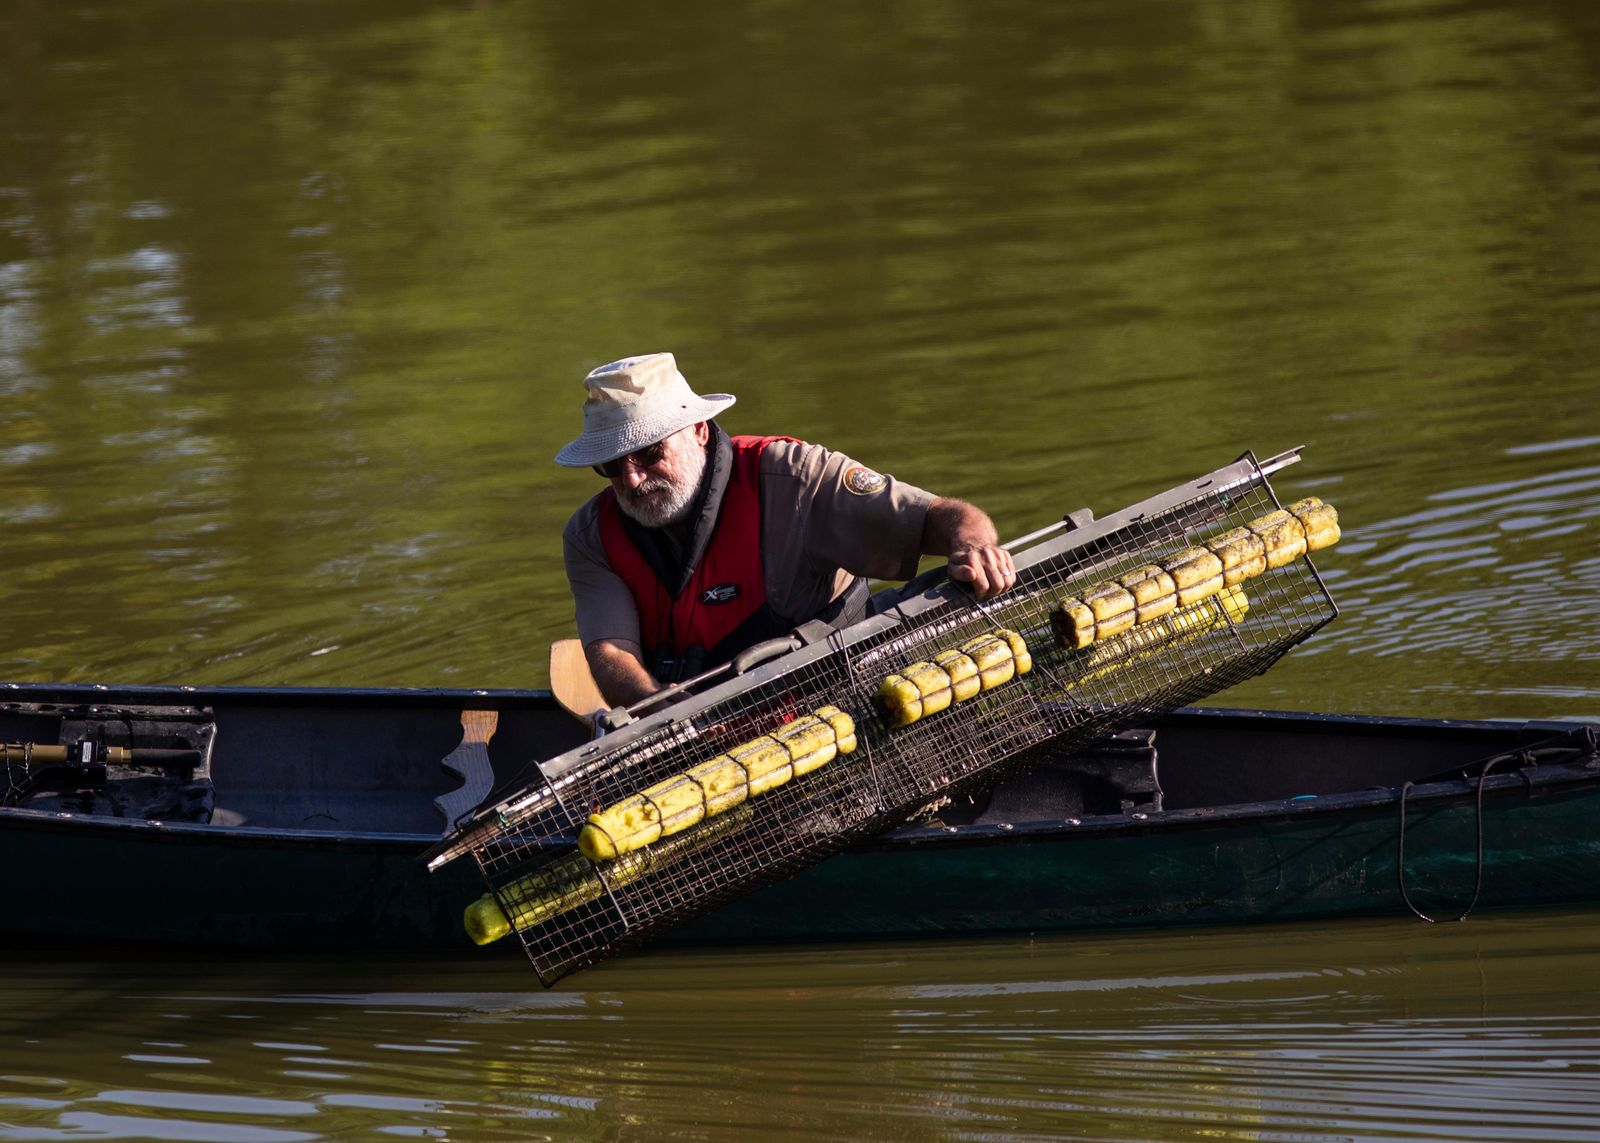 """Alligator Bob,"" an animal expert with the Chicago Herpetological Society, sets alligator traps in Humboldt Park Lagoon, Wednesday, July 10, 2019. (Ashlee Rezin/Chicago Sun-Times via AP)"